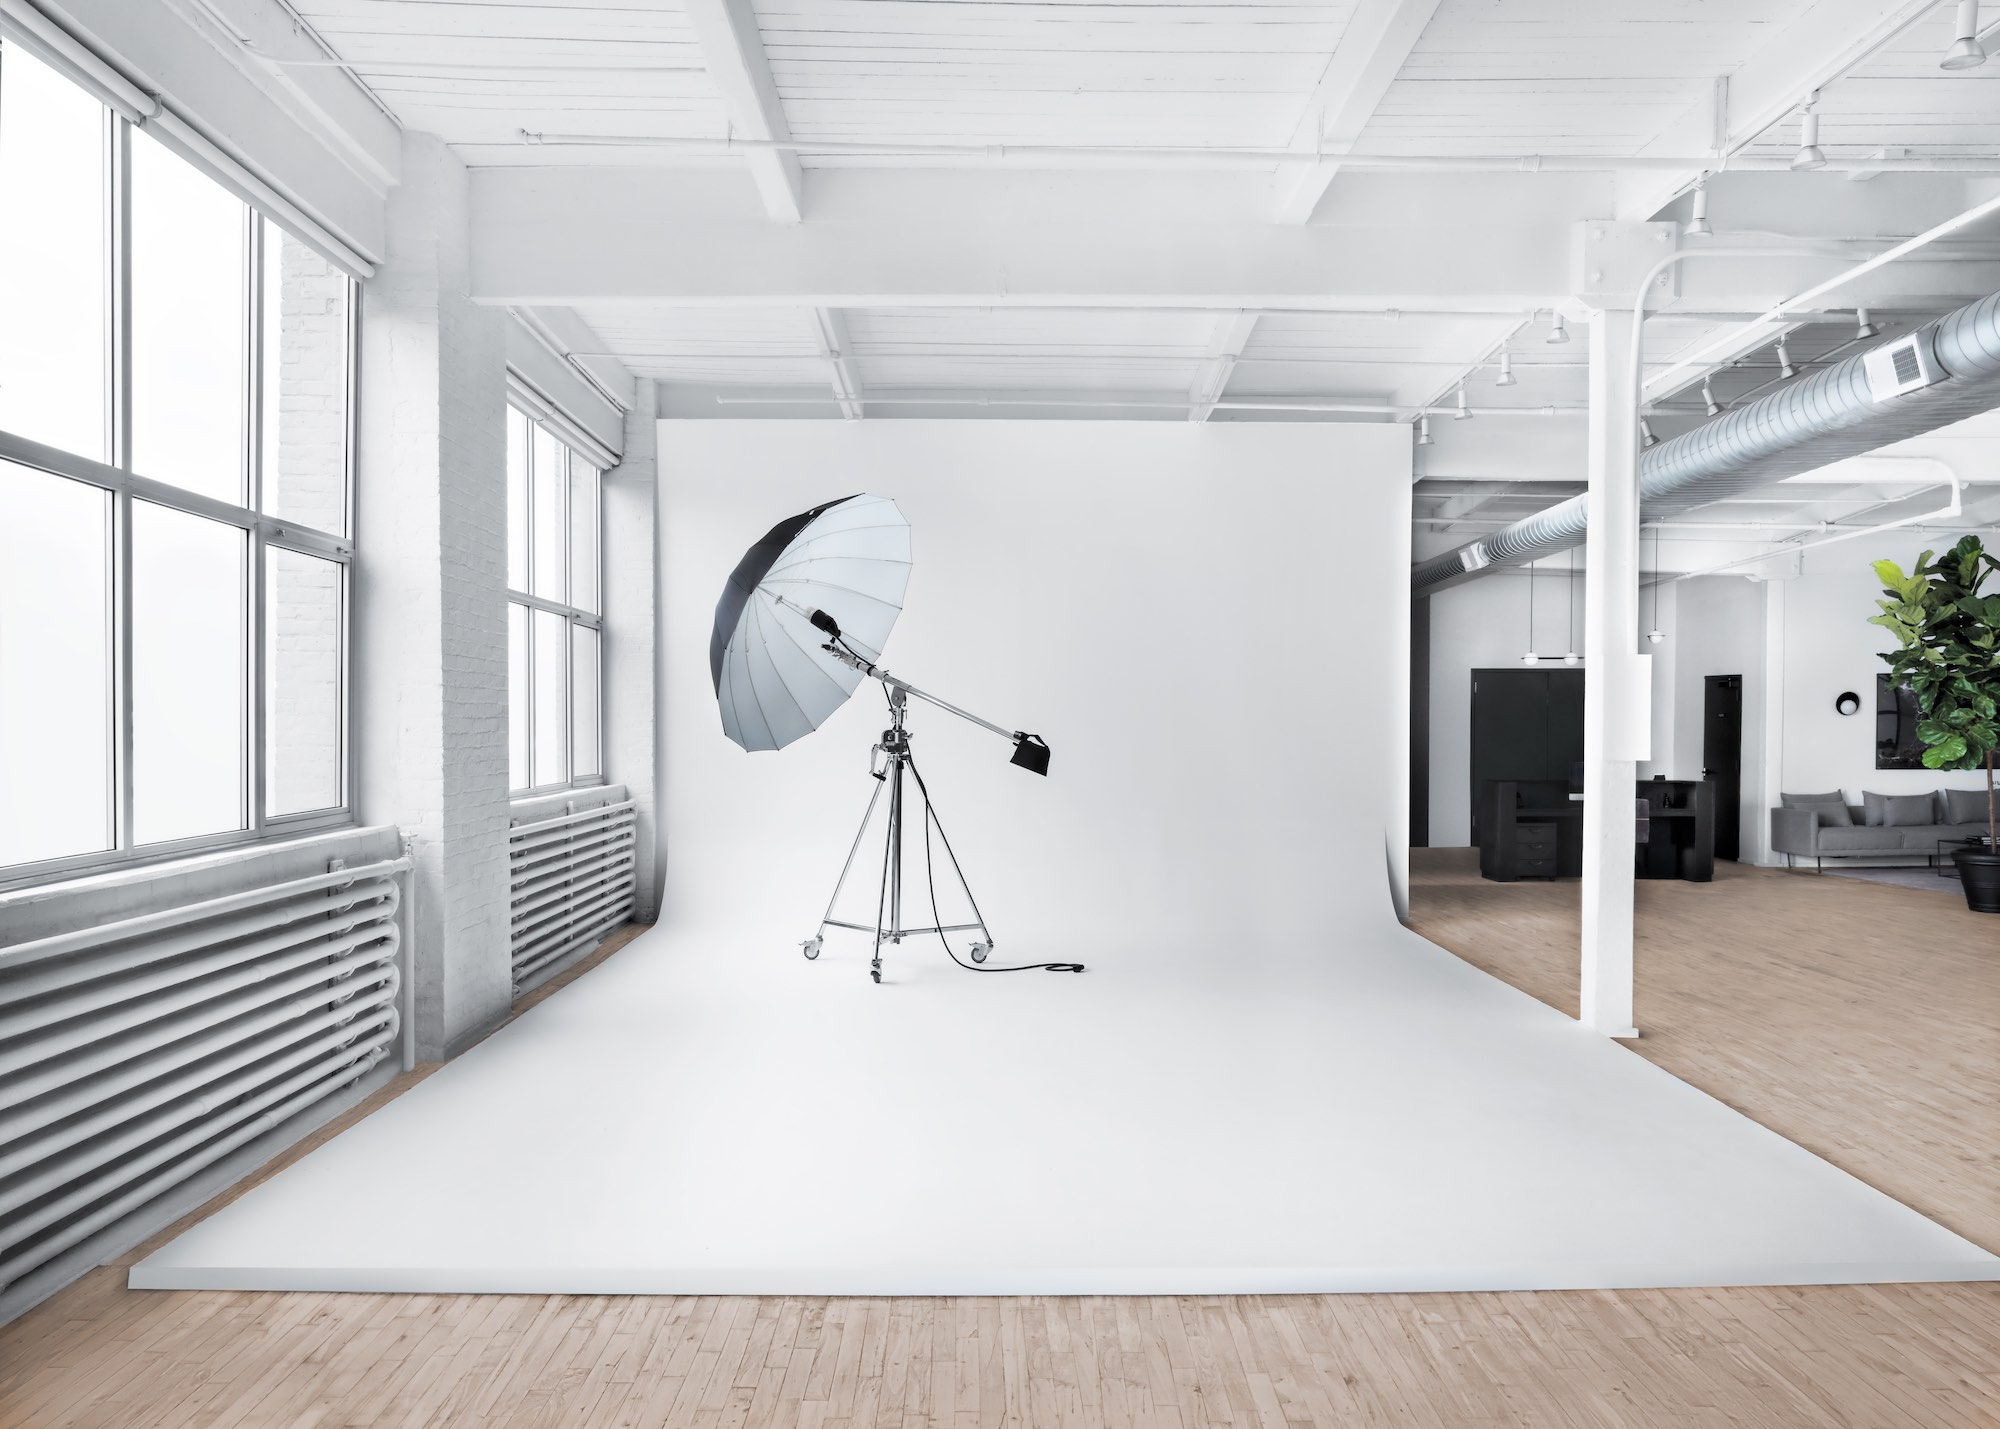 slate studios new york shoot space photography fashion editorial